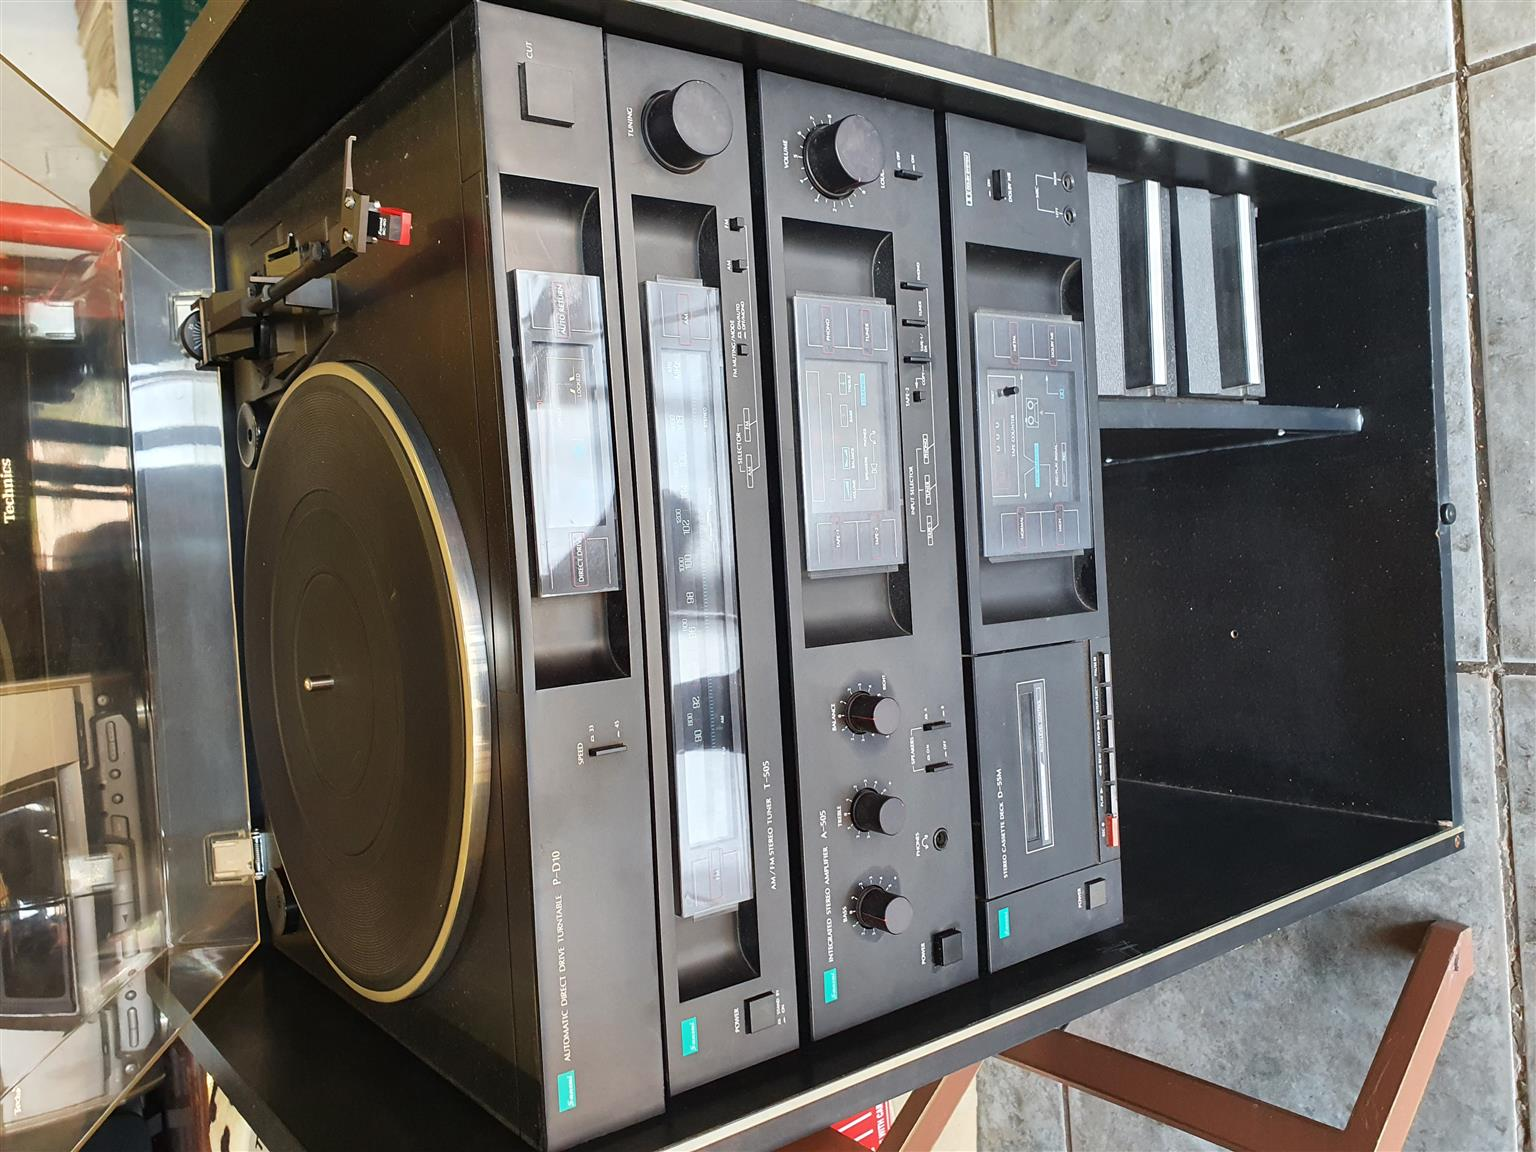 Sansui Hifi Component 4 Stack System and Cabinet (No Speakers)